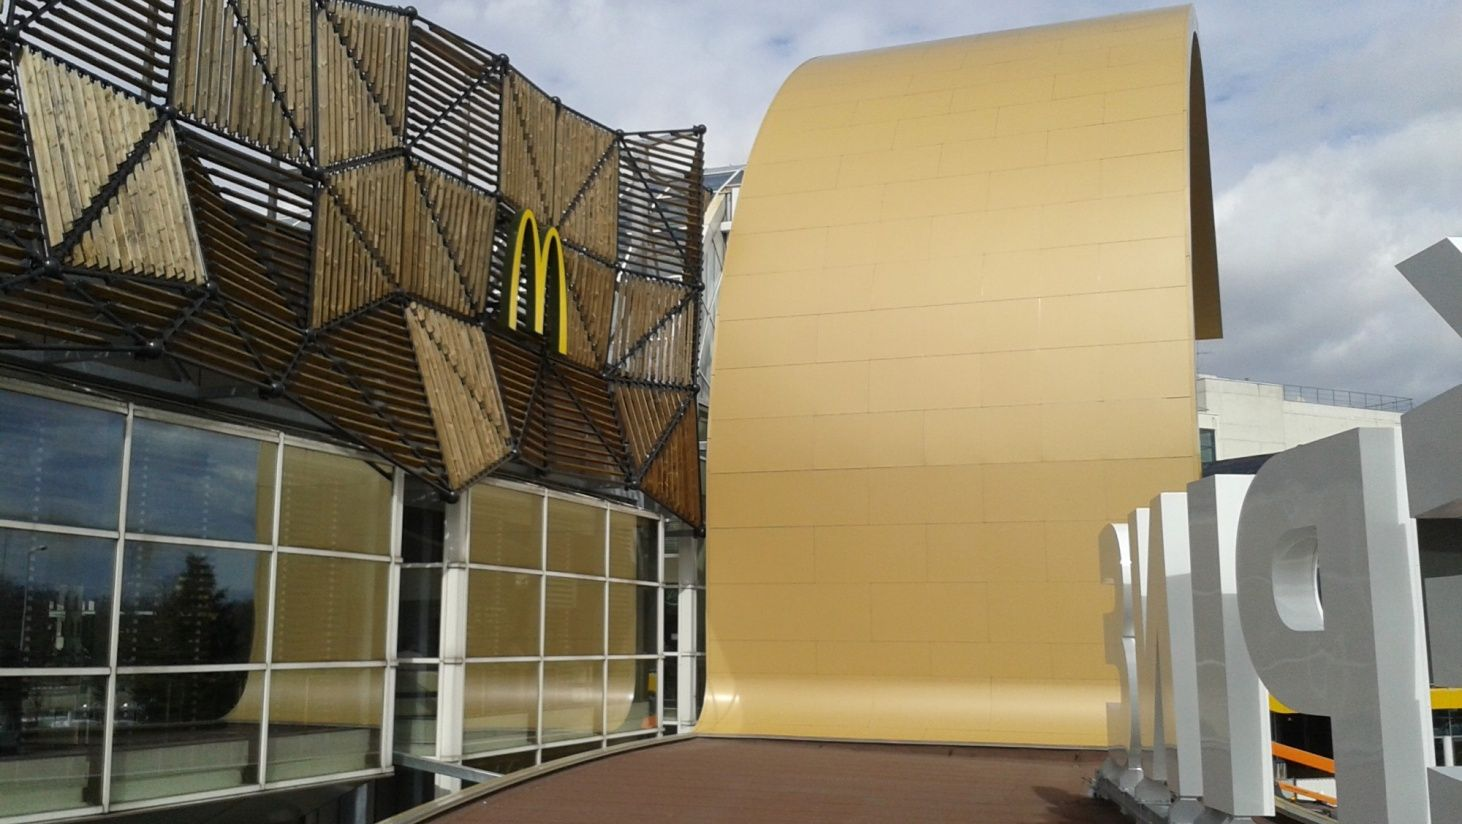 Accents With Cladding | Exterior Wood Cladding Ideas | Pinterest ...